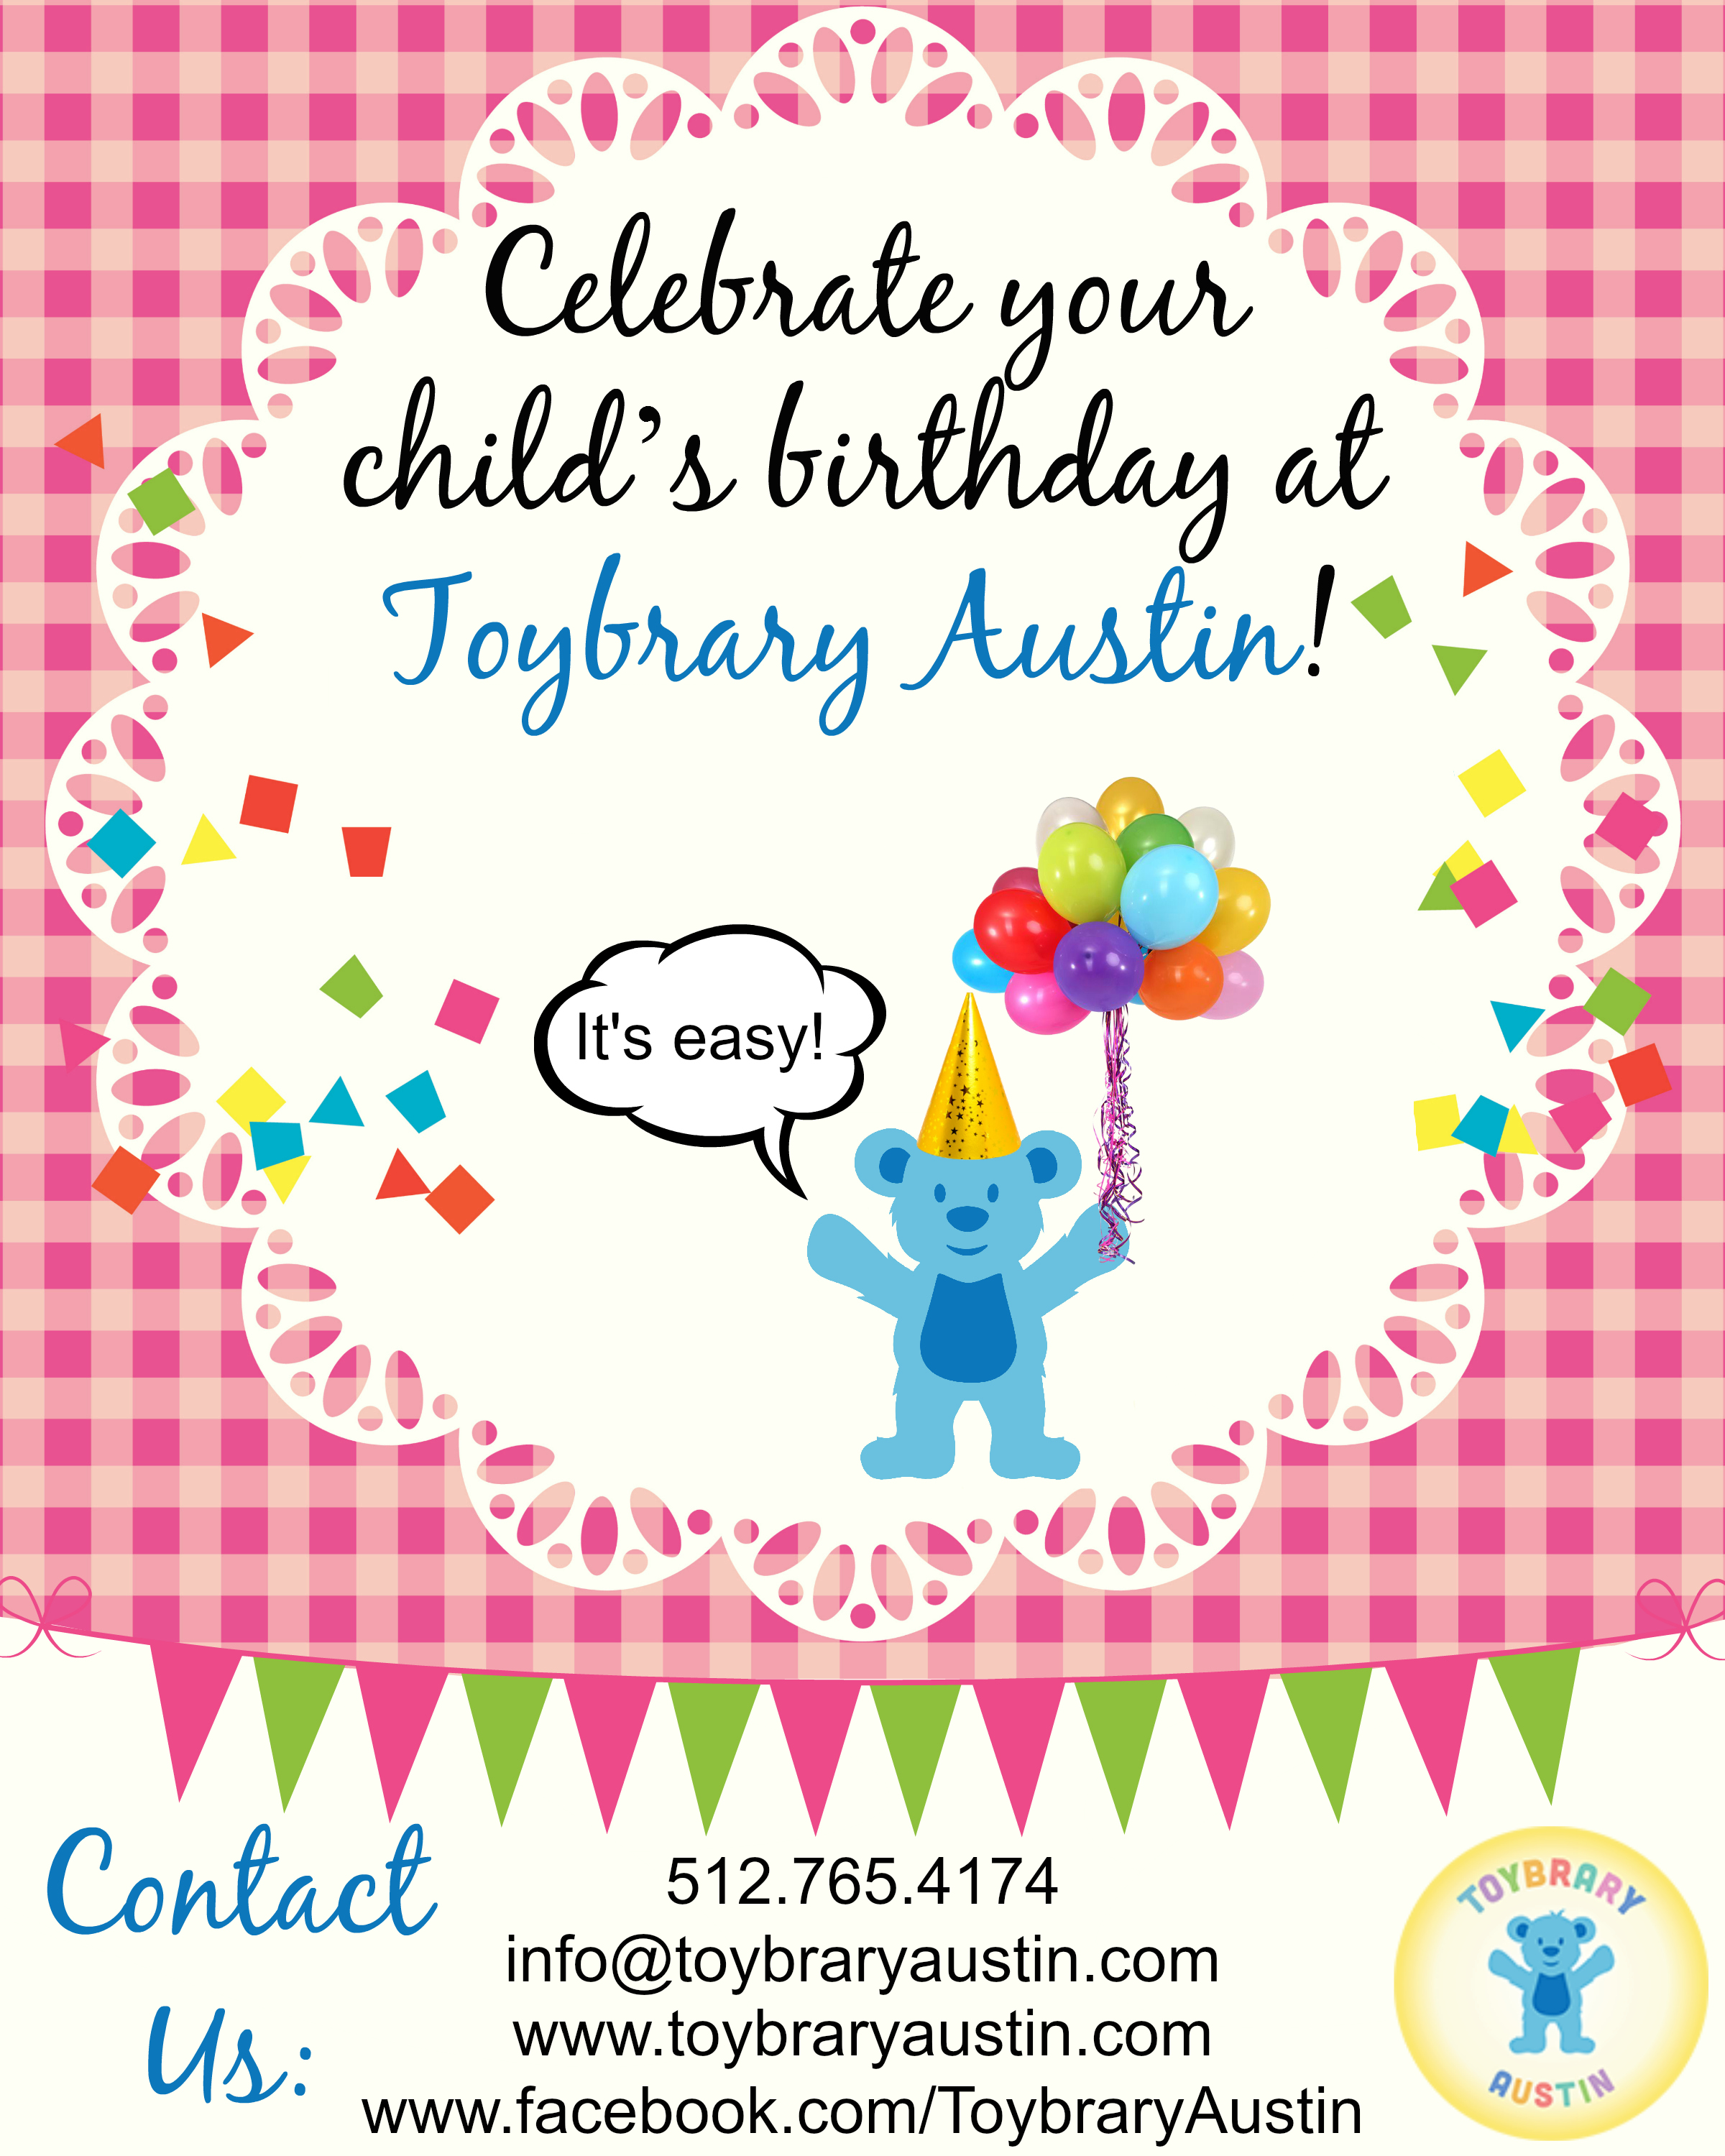 Kids Parties Austin | Kids Birthday Party Venue in Austin ...